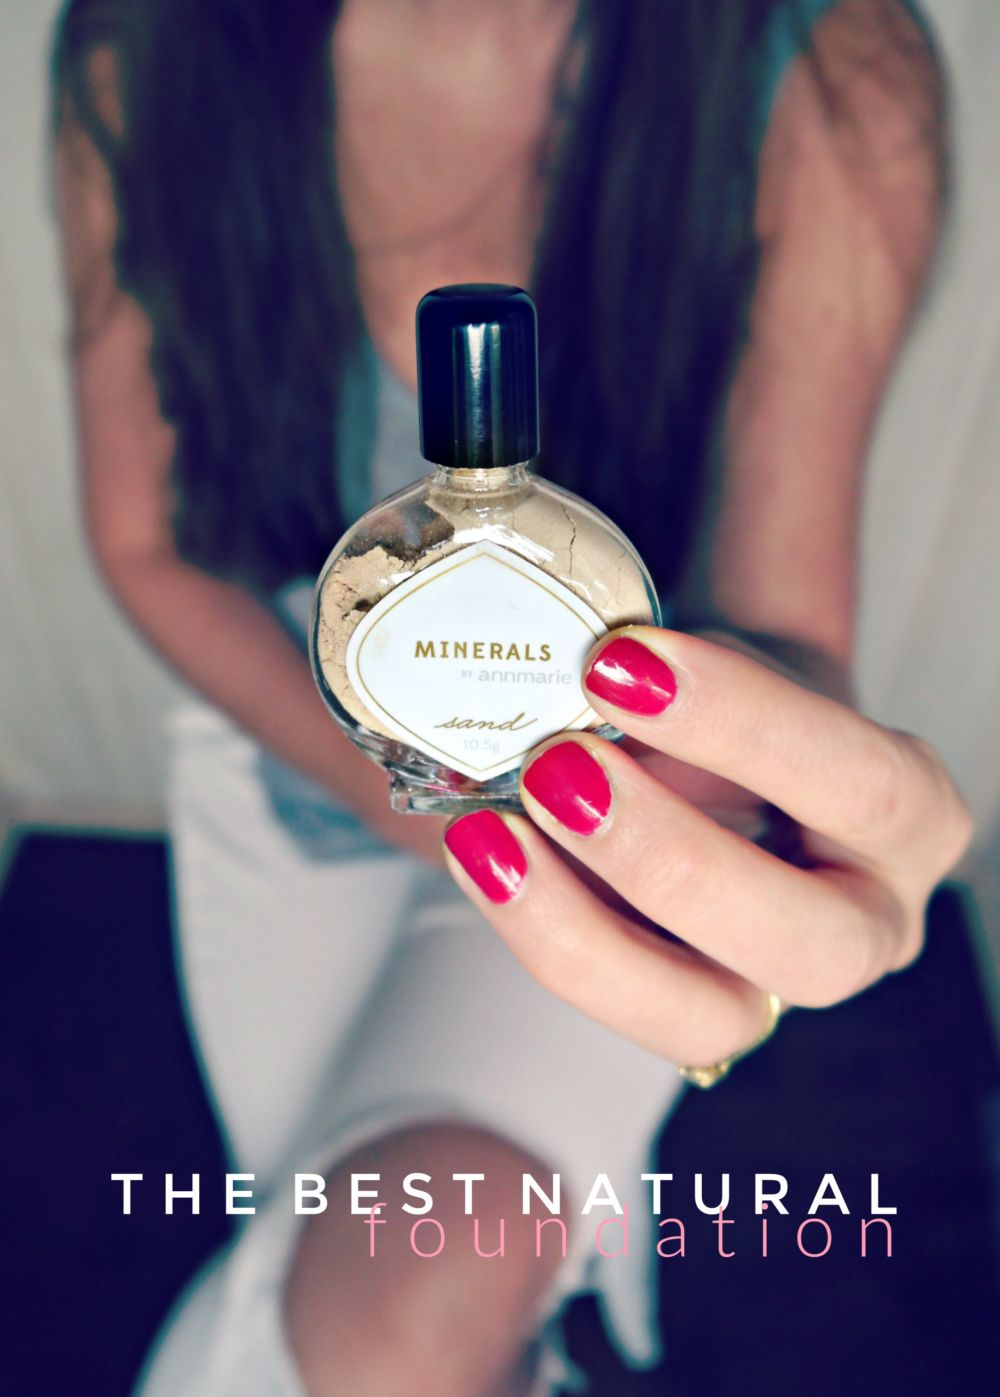 Annmarie Minerals Review